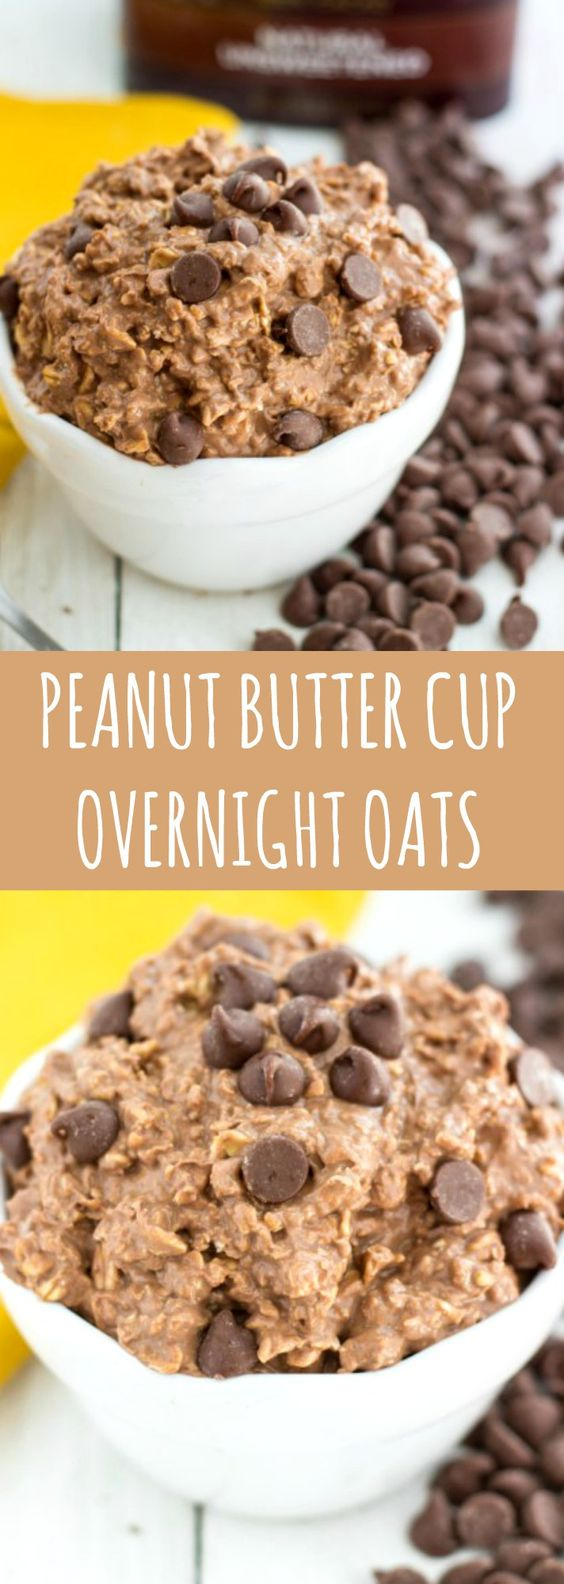 PEANUT BUTTER CUP OVERNIGHT OATS